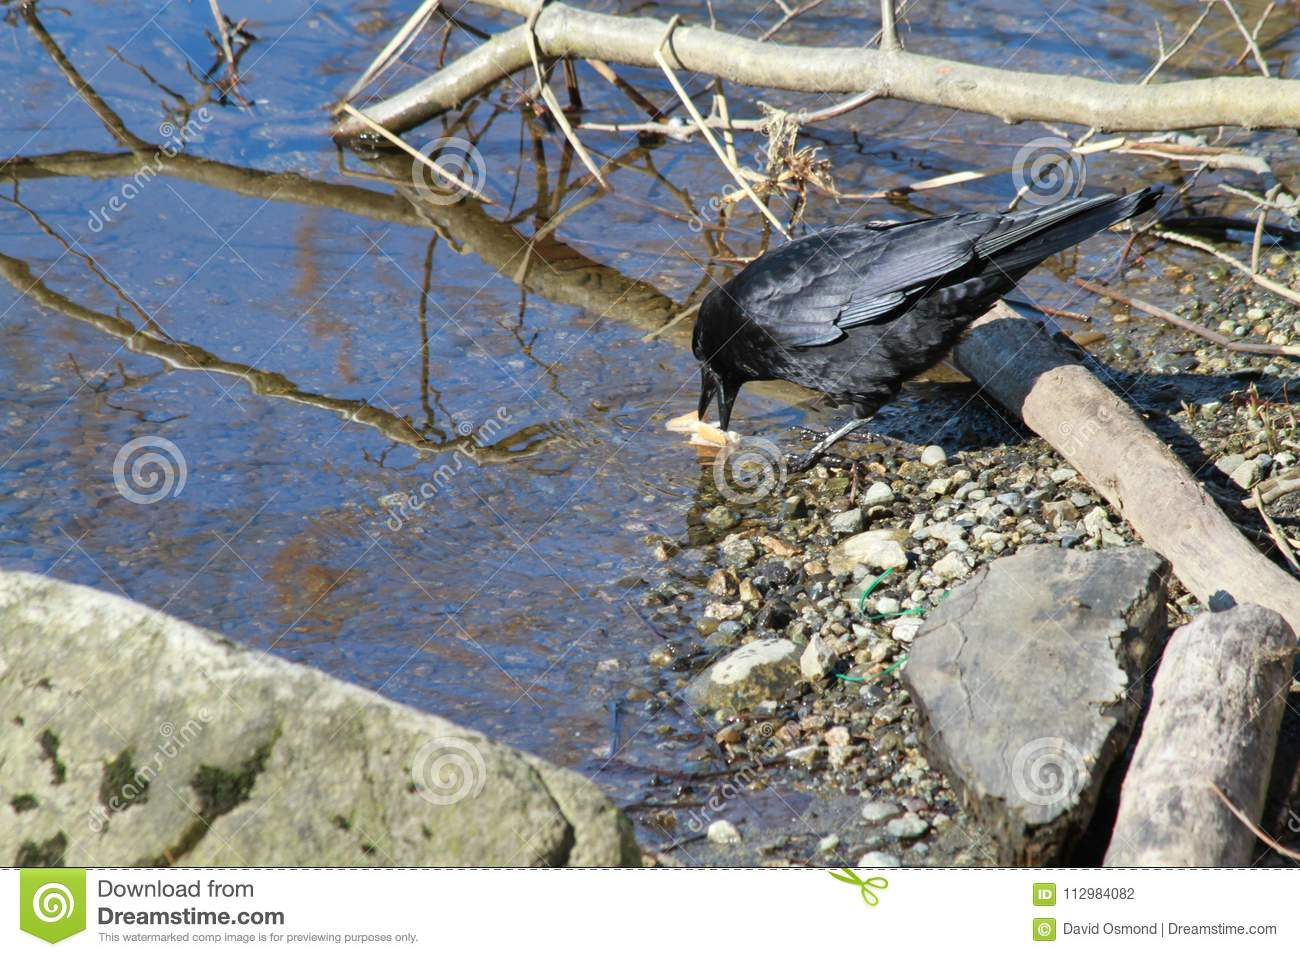 Black crow on the edge of a lake